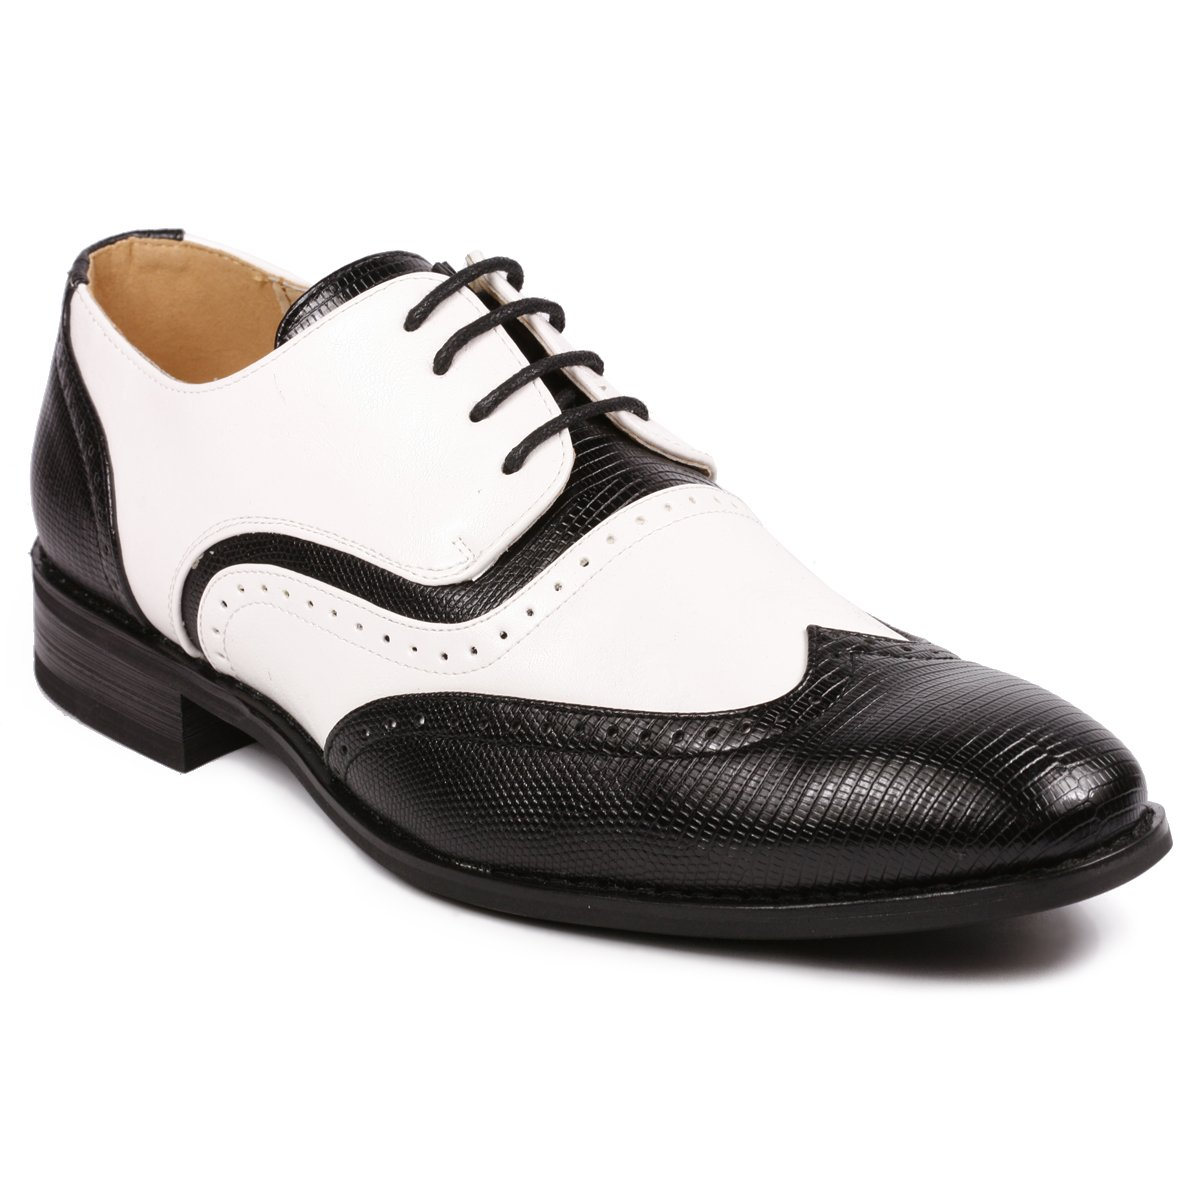 Men's 1950s Shoes Styles- Classics to Saddles to Rockabilly Metrocharm MC113 Mens Wing Tip Perforated Lace Up Oxford Dress Shoes $39.99 AT vintagedancer.com